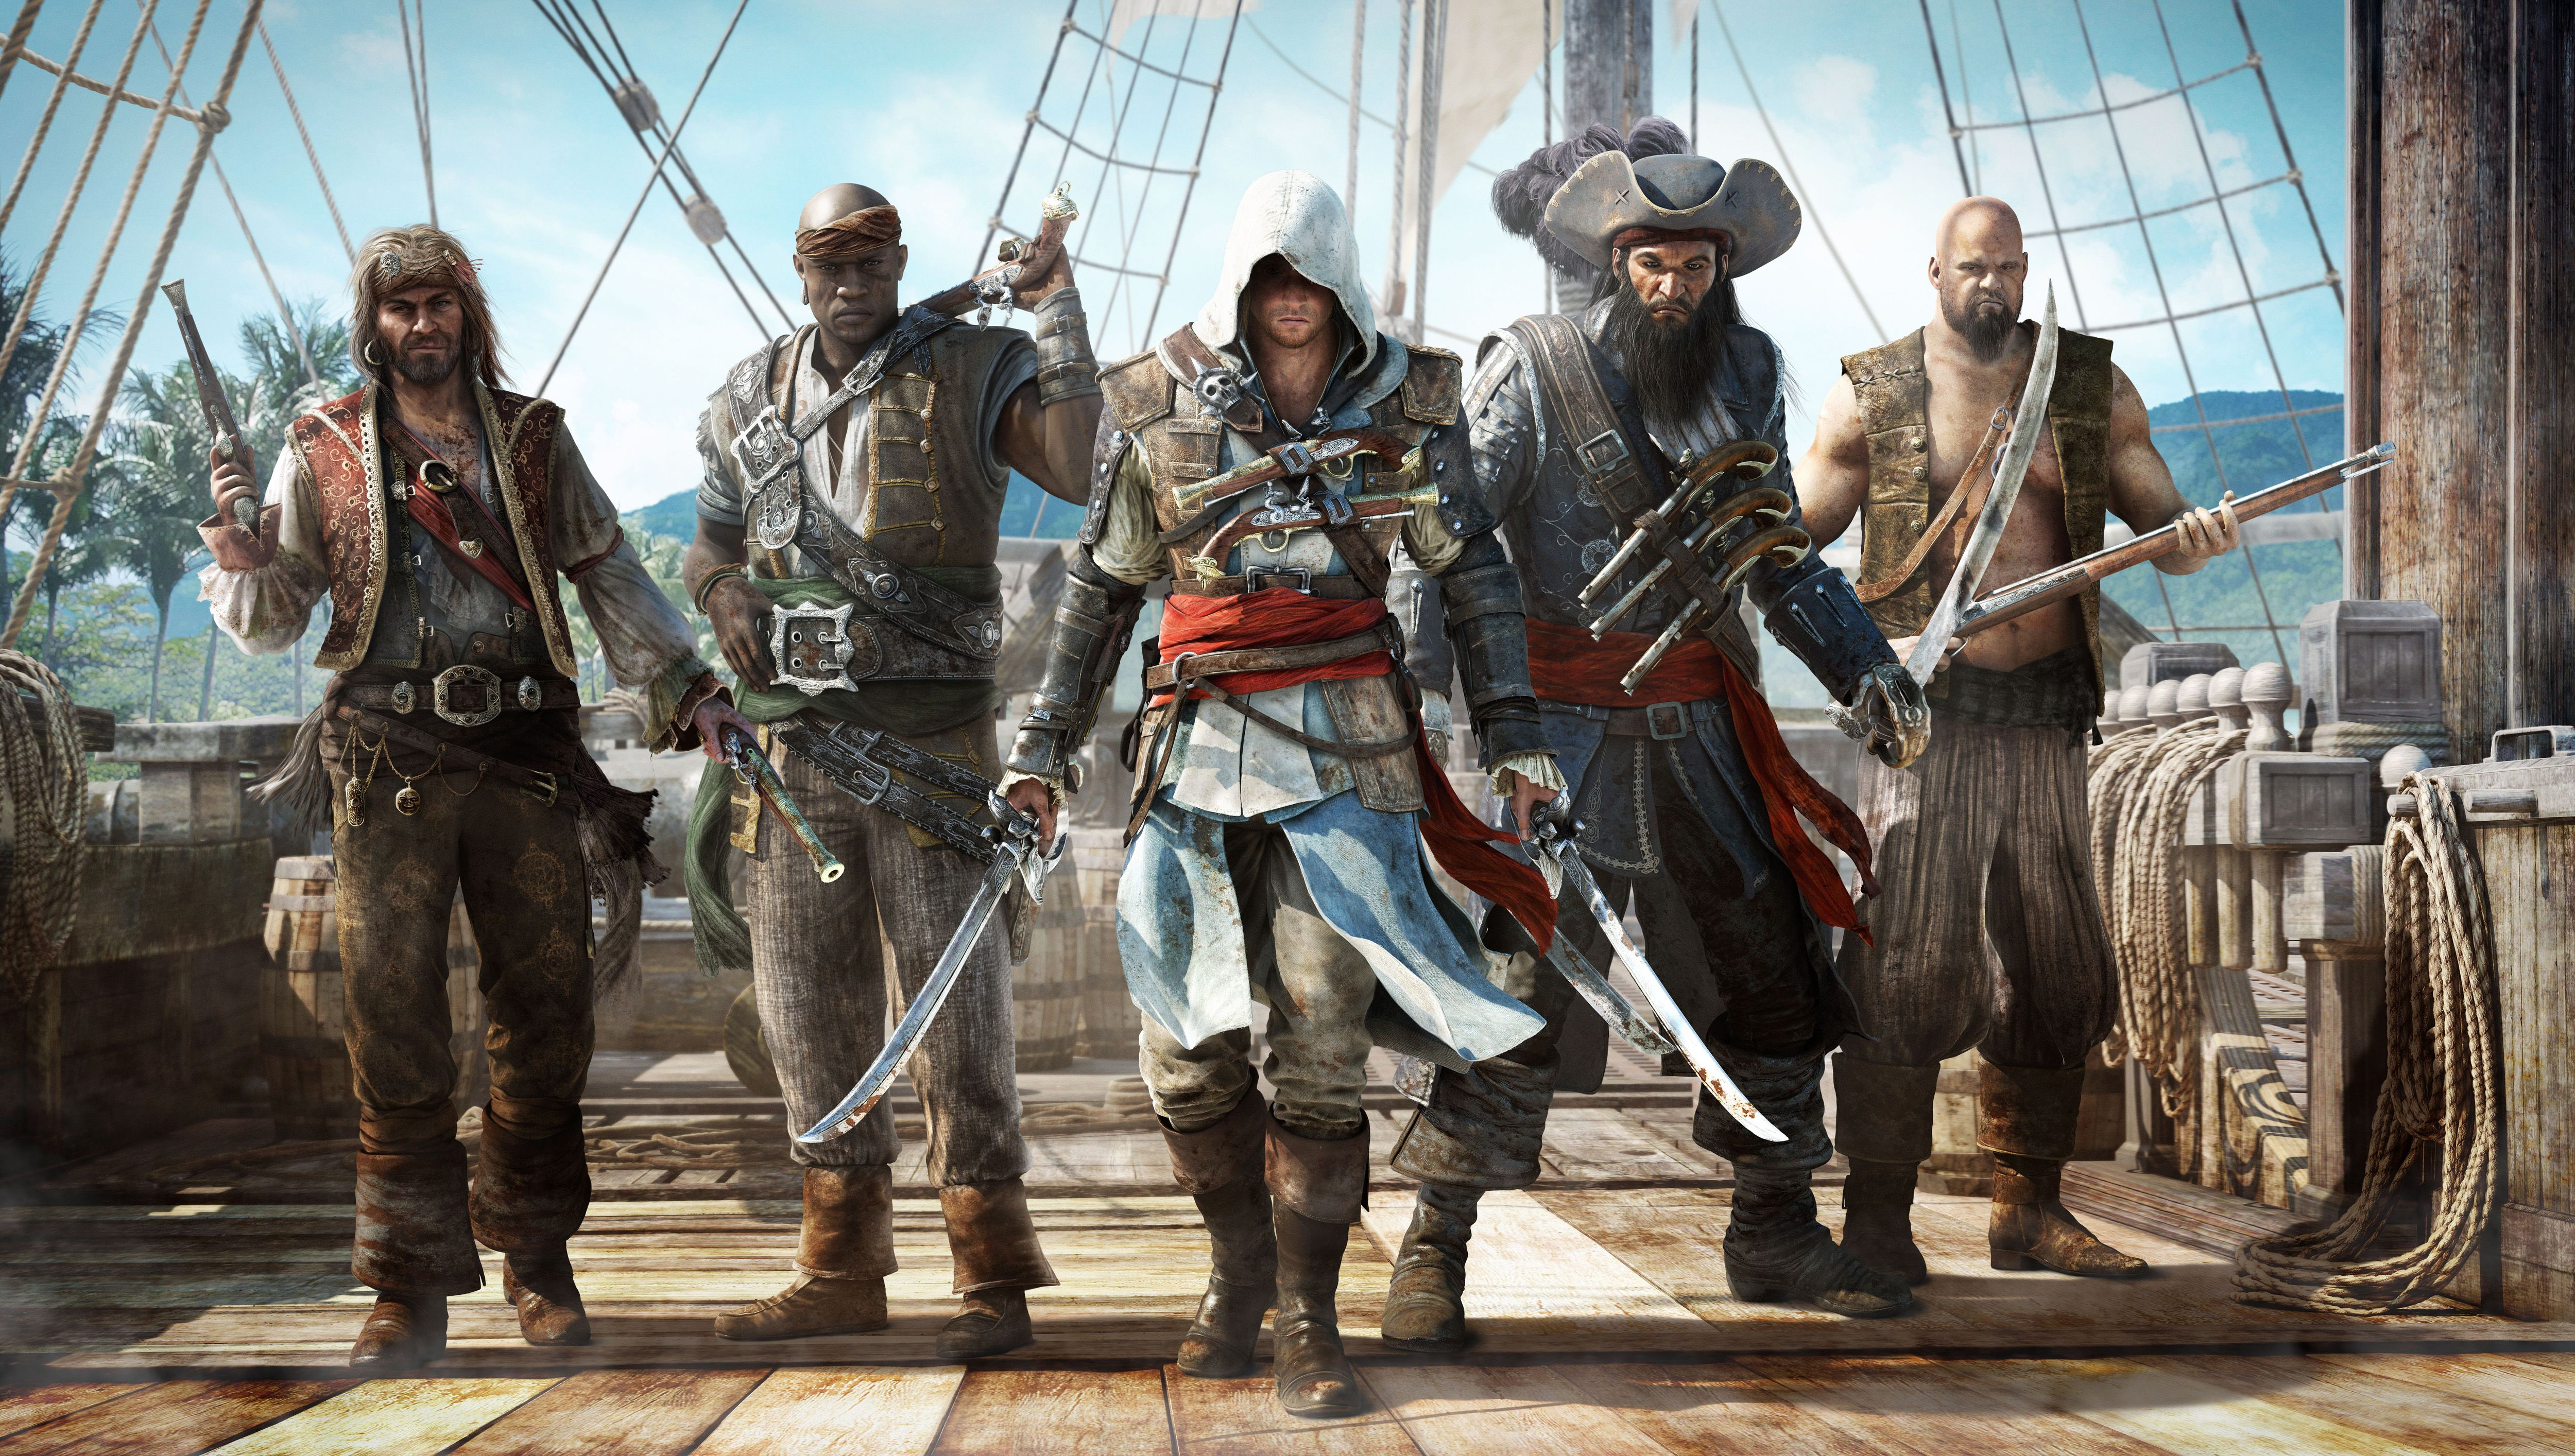 Assassin S Creed 4 Black Flag Top 5 Ways To Earn Loot Assassins Creed Black Flag Assassin S Creed Black Assassin S Creed Wallpaper